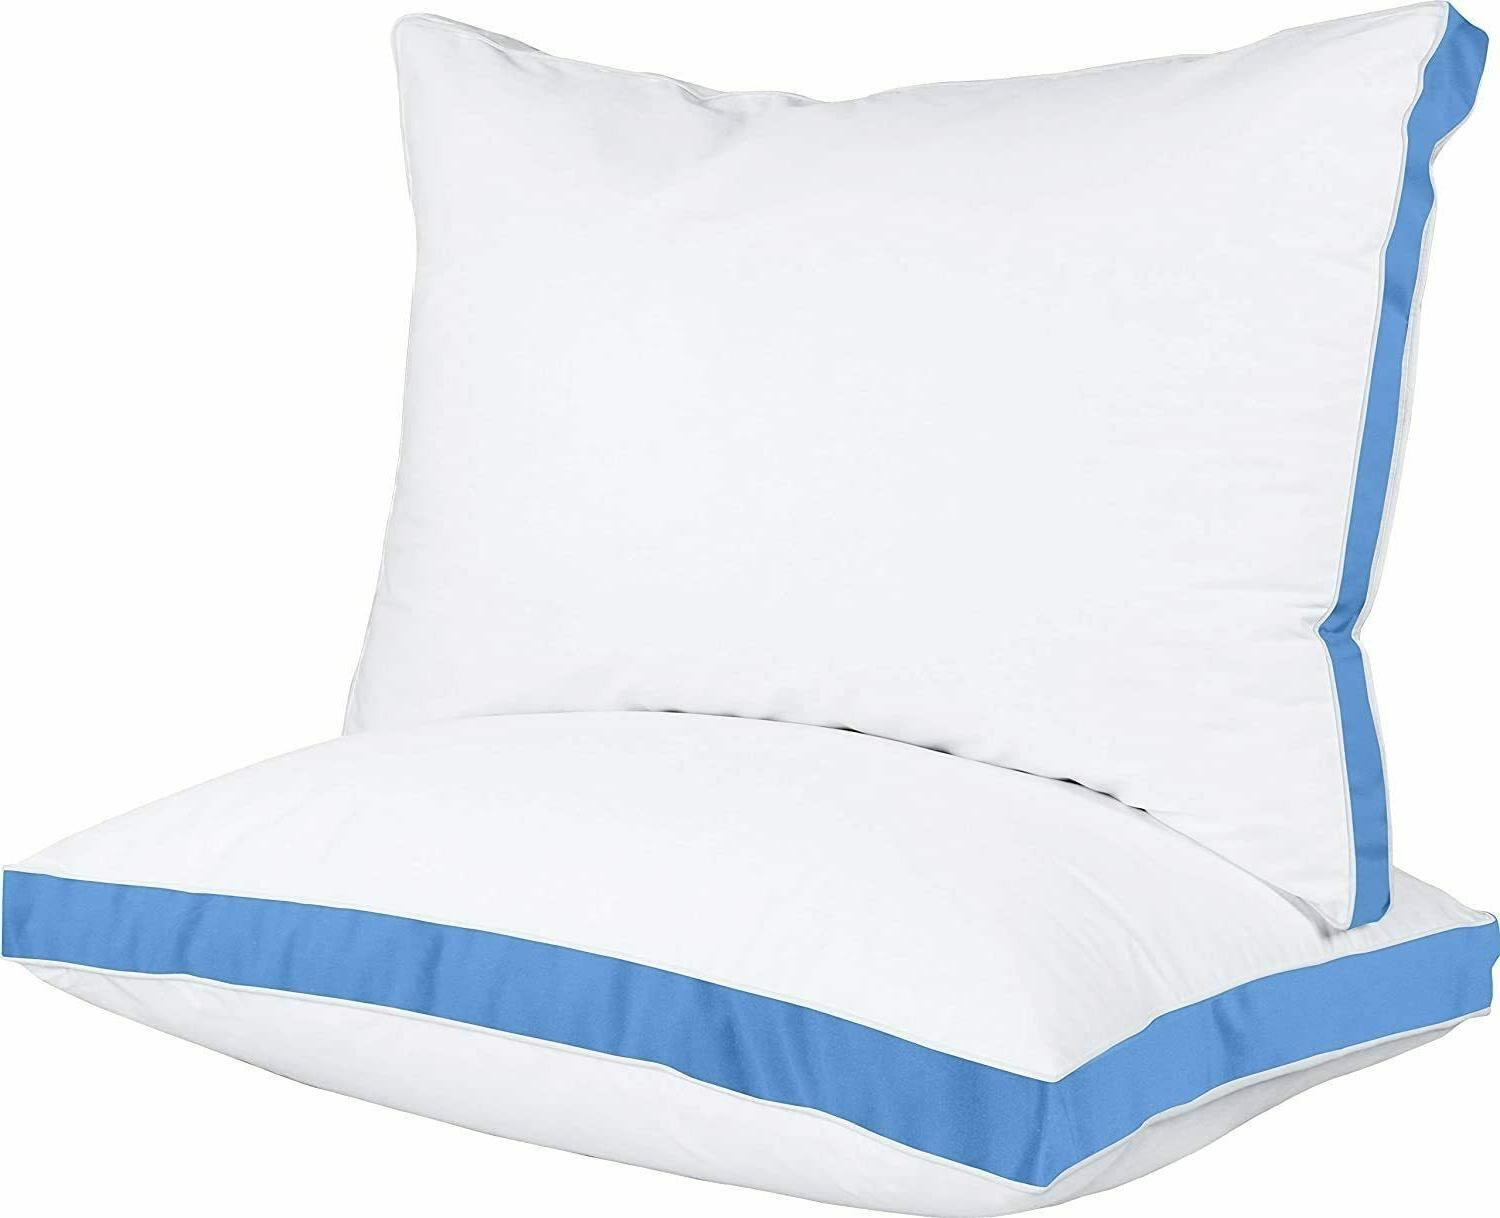 Gusseted Quilted Pillow 2 Pack Hypo Allergenic Queen & King